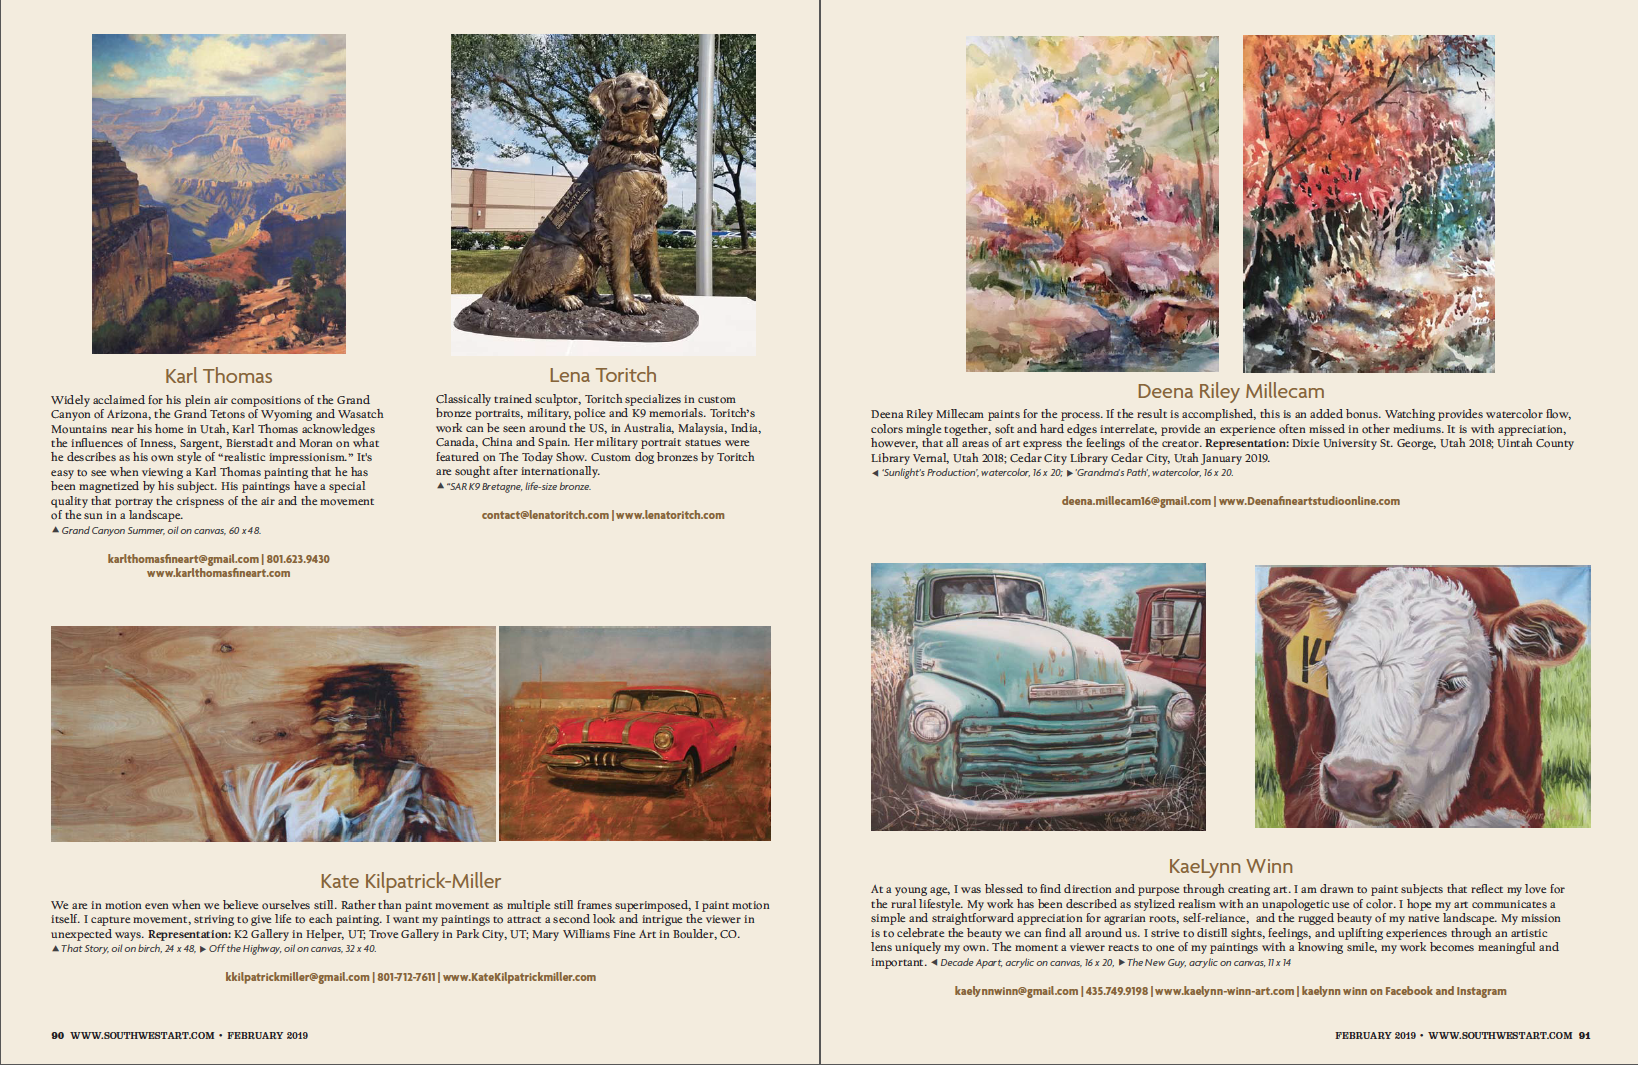 EXCERPT FROM SOUTHWEST ART MAGAZINE FEBRUARY 2019 ISSUE